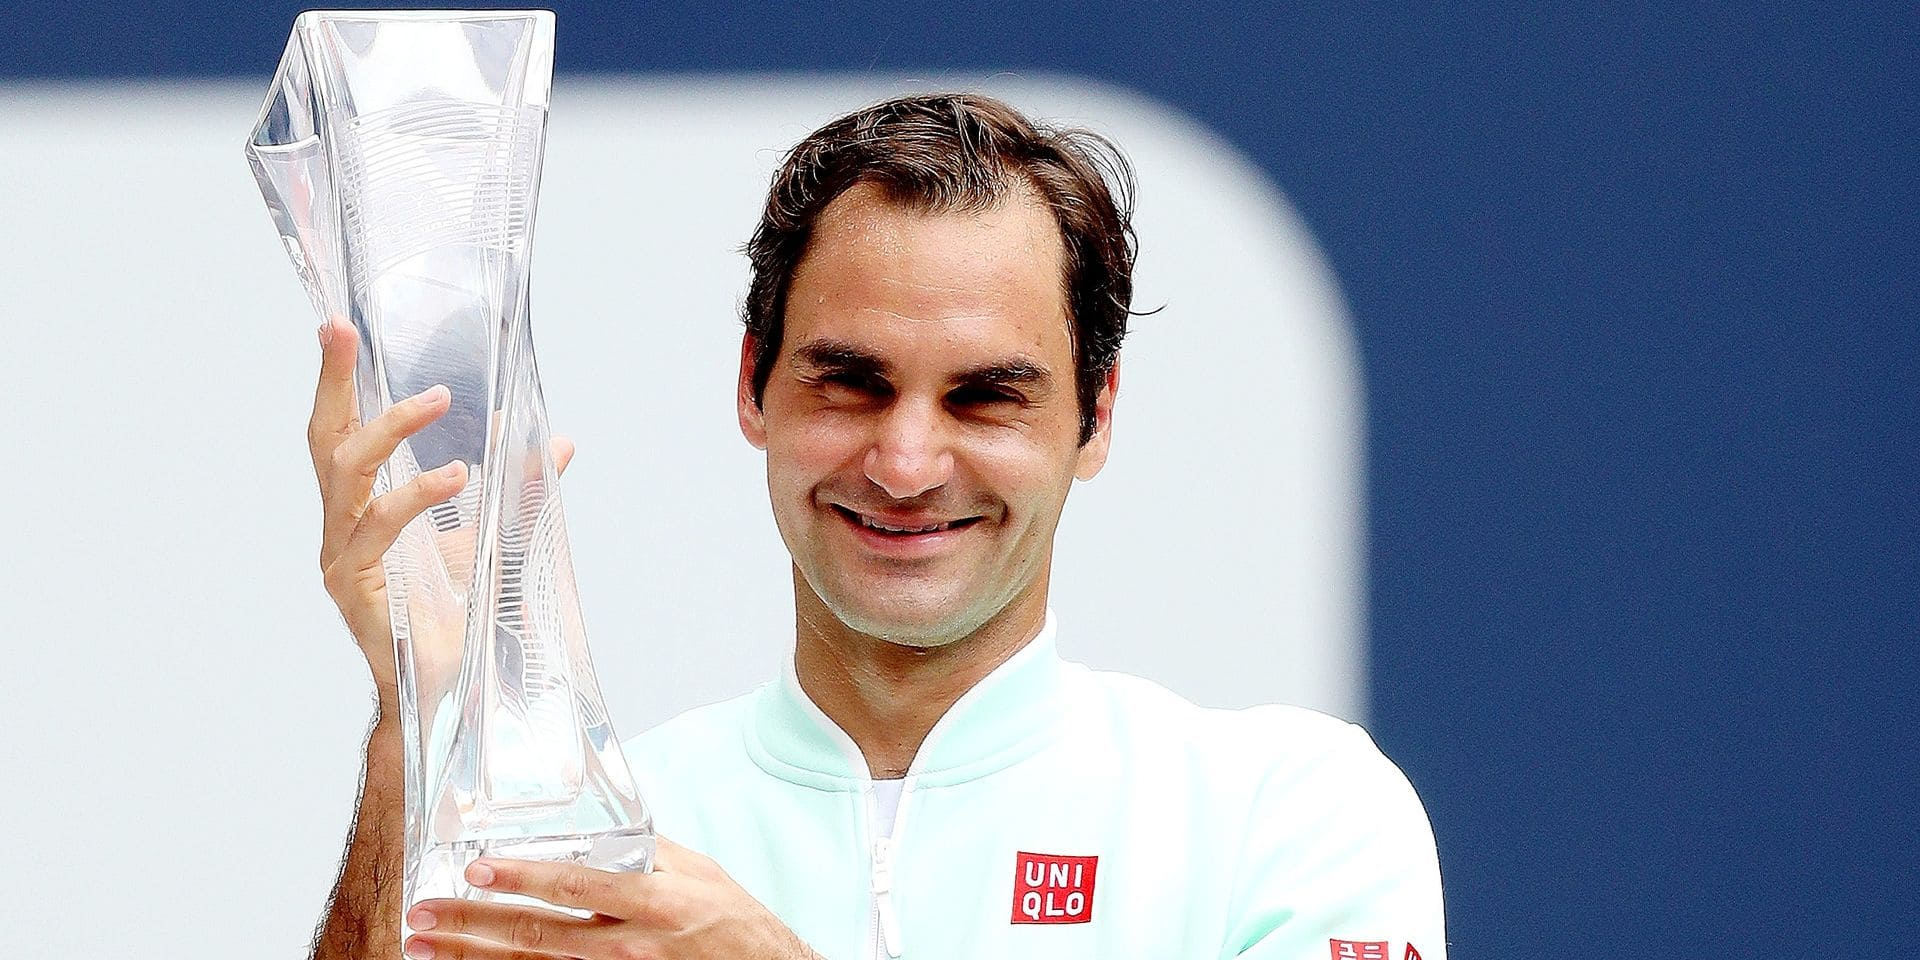 MIAMI GARDENS, FLORIDA - MARCH 31: Roger Federer of Switzerland celebrates with the Butch Buchholz Trophy after defeating John Isner during the men's final of the Miami Open Presented by Itau at Hard Rock Stadium March 31, 2019 in Miami Gardens, Florida. Matthew Stockman/Getty Images/AFP == FOR NEWSPAPERS, INTERNET, TELCOS & TELEVISION USE ONLY ==